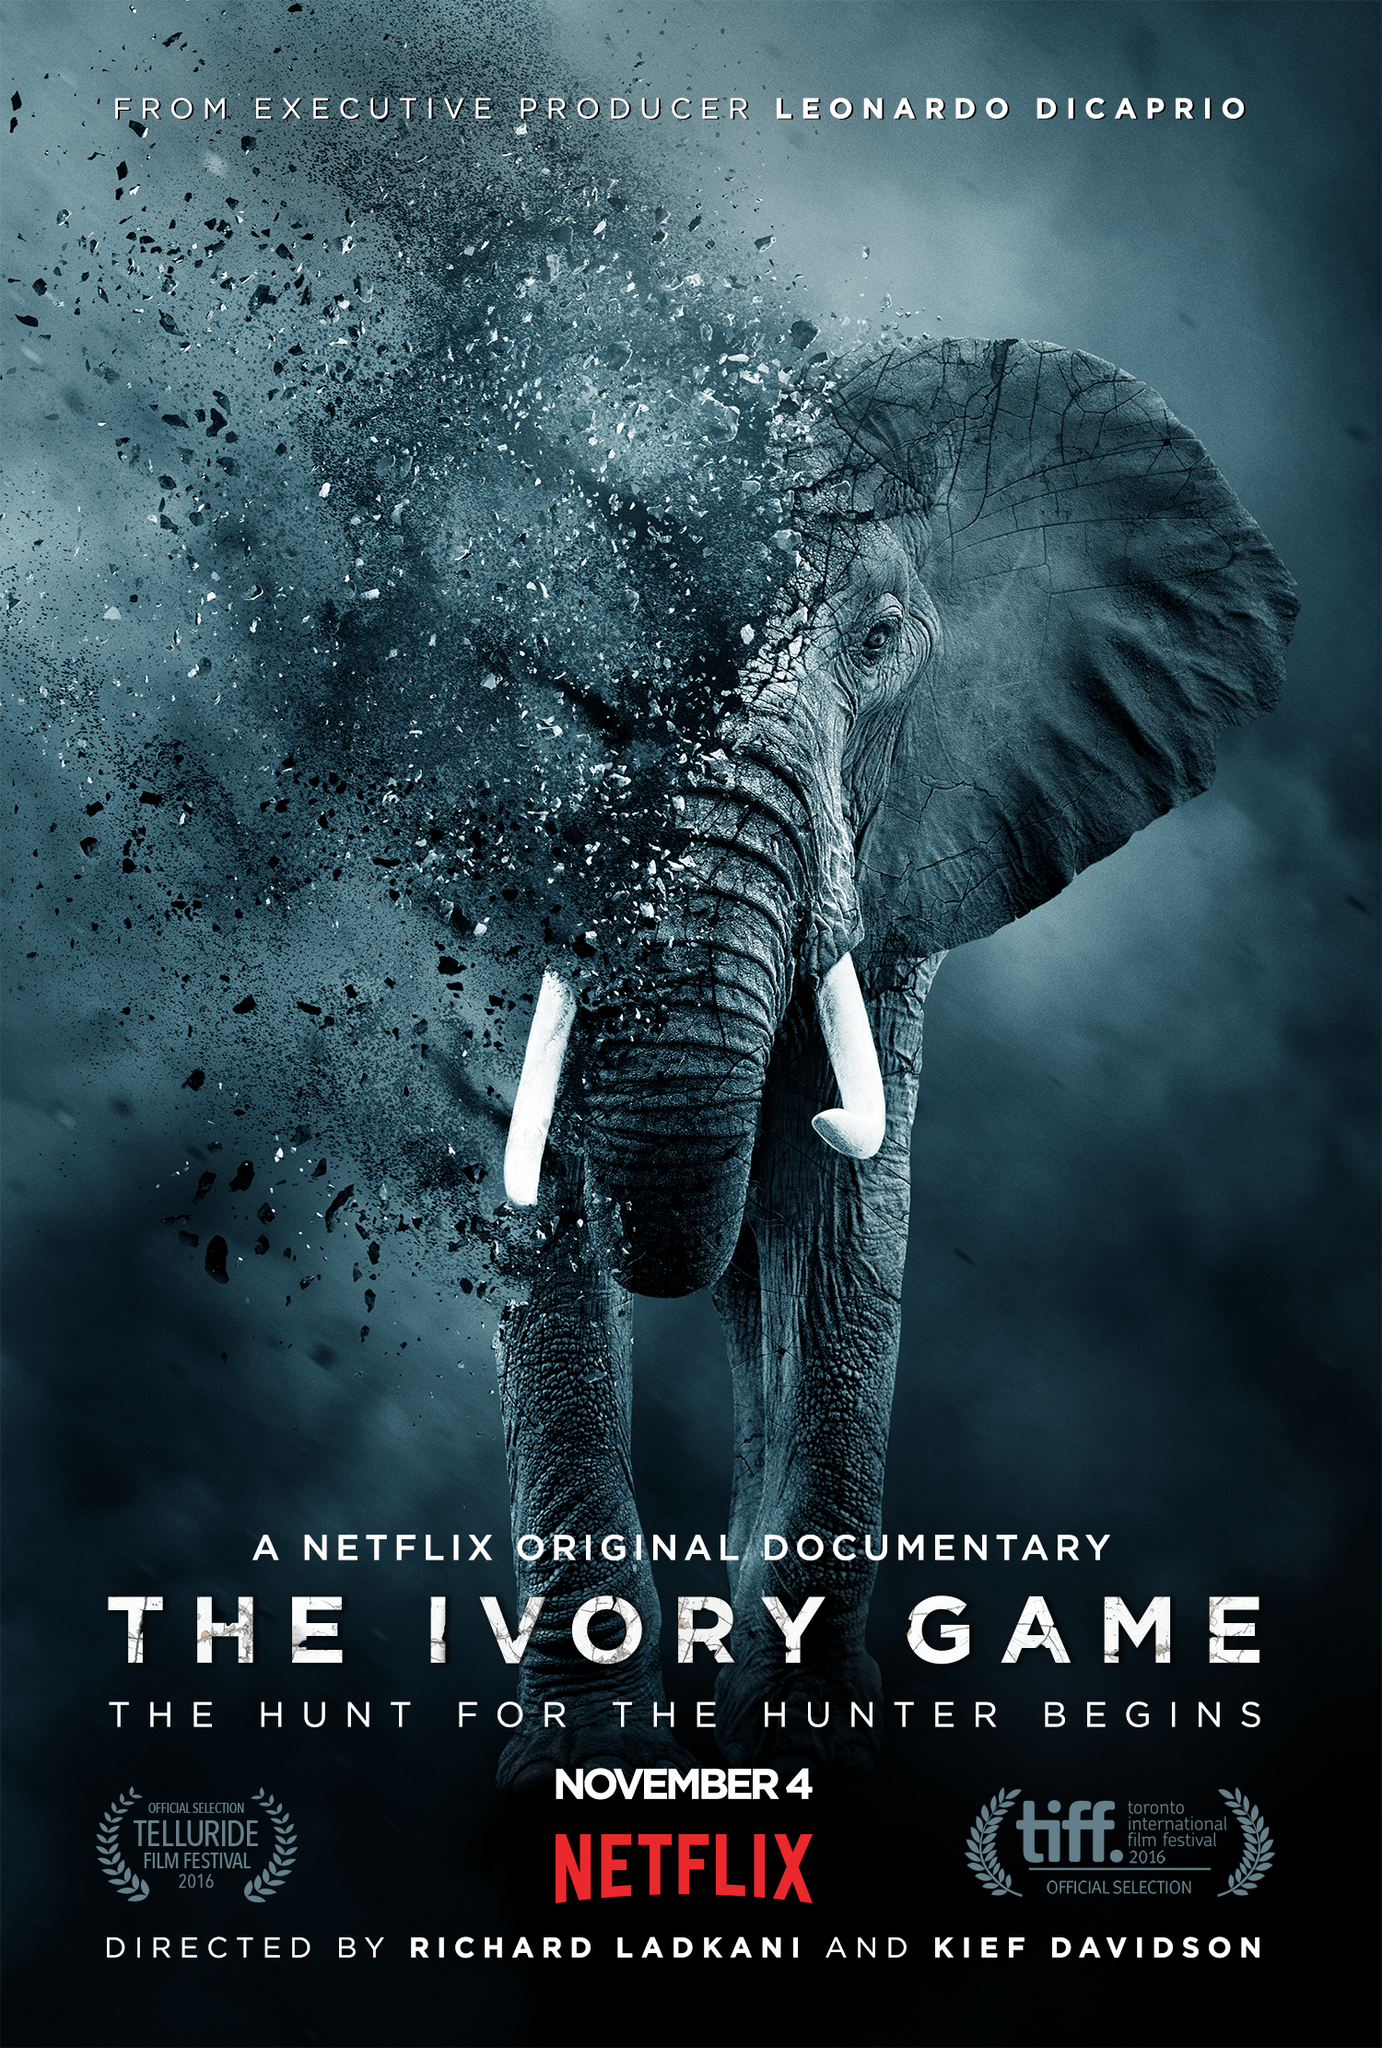 The Ivory Game